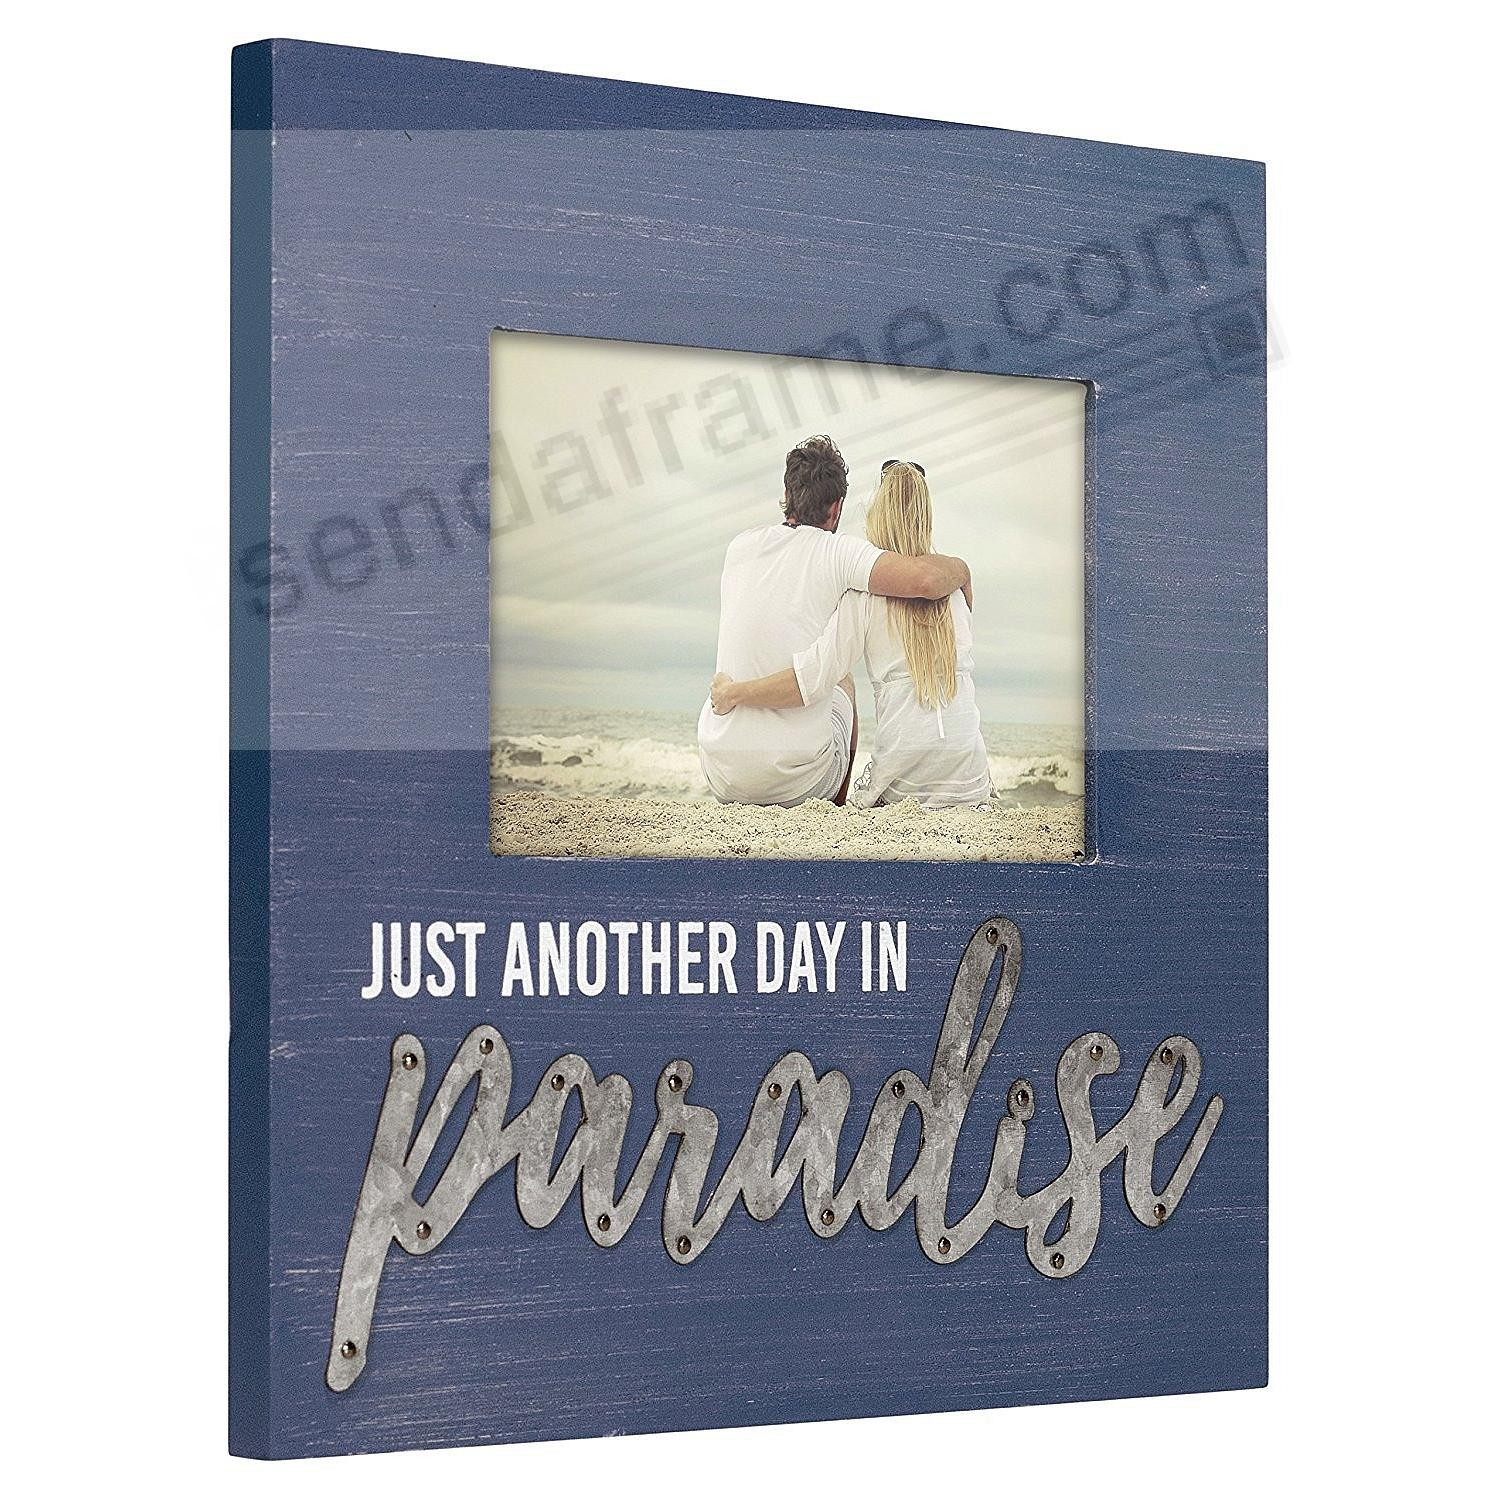 PARADISE w/Galvanized Lettering 4x6 Frame by Malden®